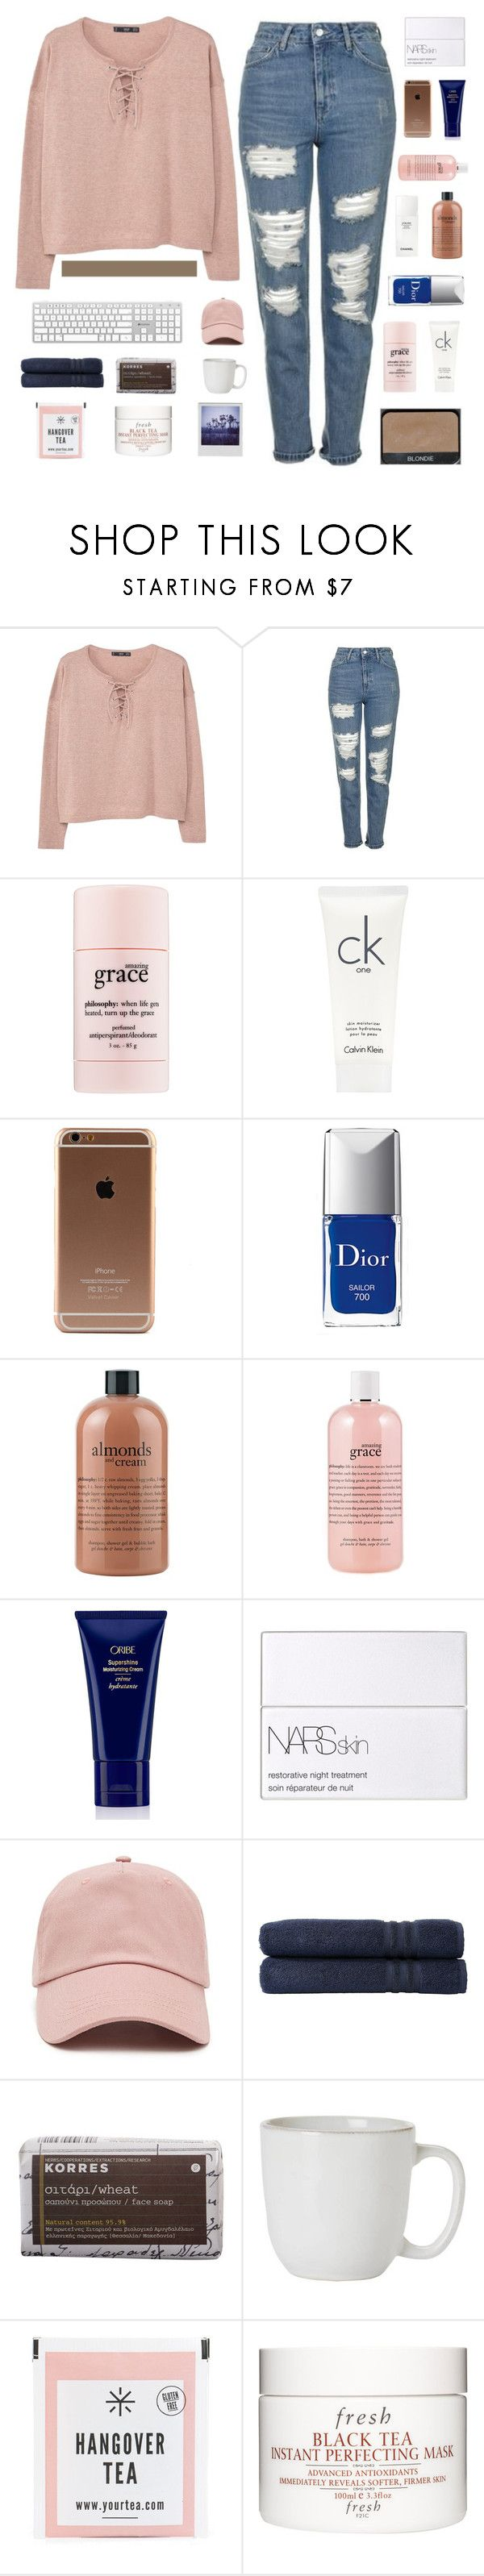 """""""taglist"""" by bvck-spvce ❤ liked on Polyvore featuring MANGO, Topshop, NARS Cosmetics, philosophy, Calvin Klein, Christian Dior, Chanel, Oribe, Forever 21 and Linum Home Textiles"""